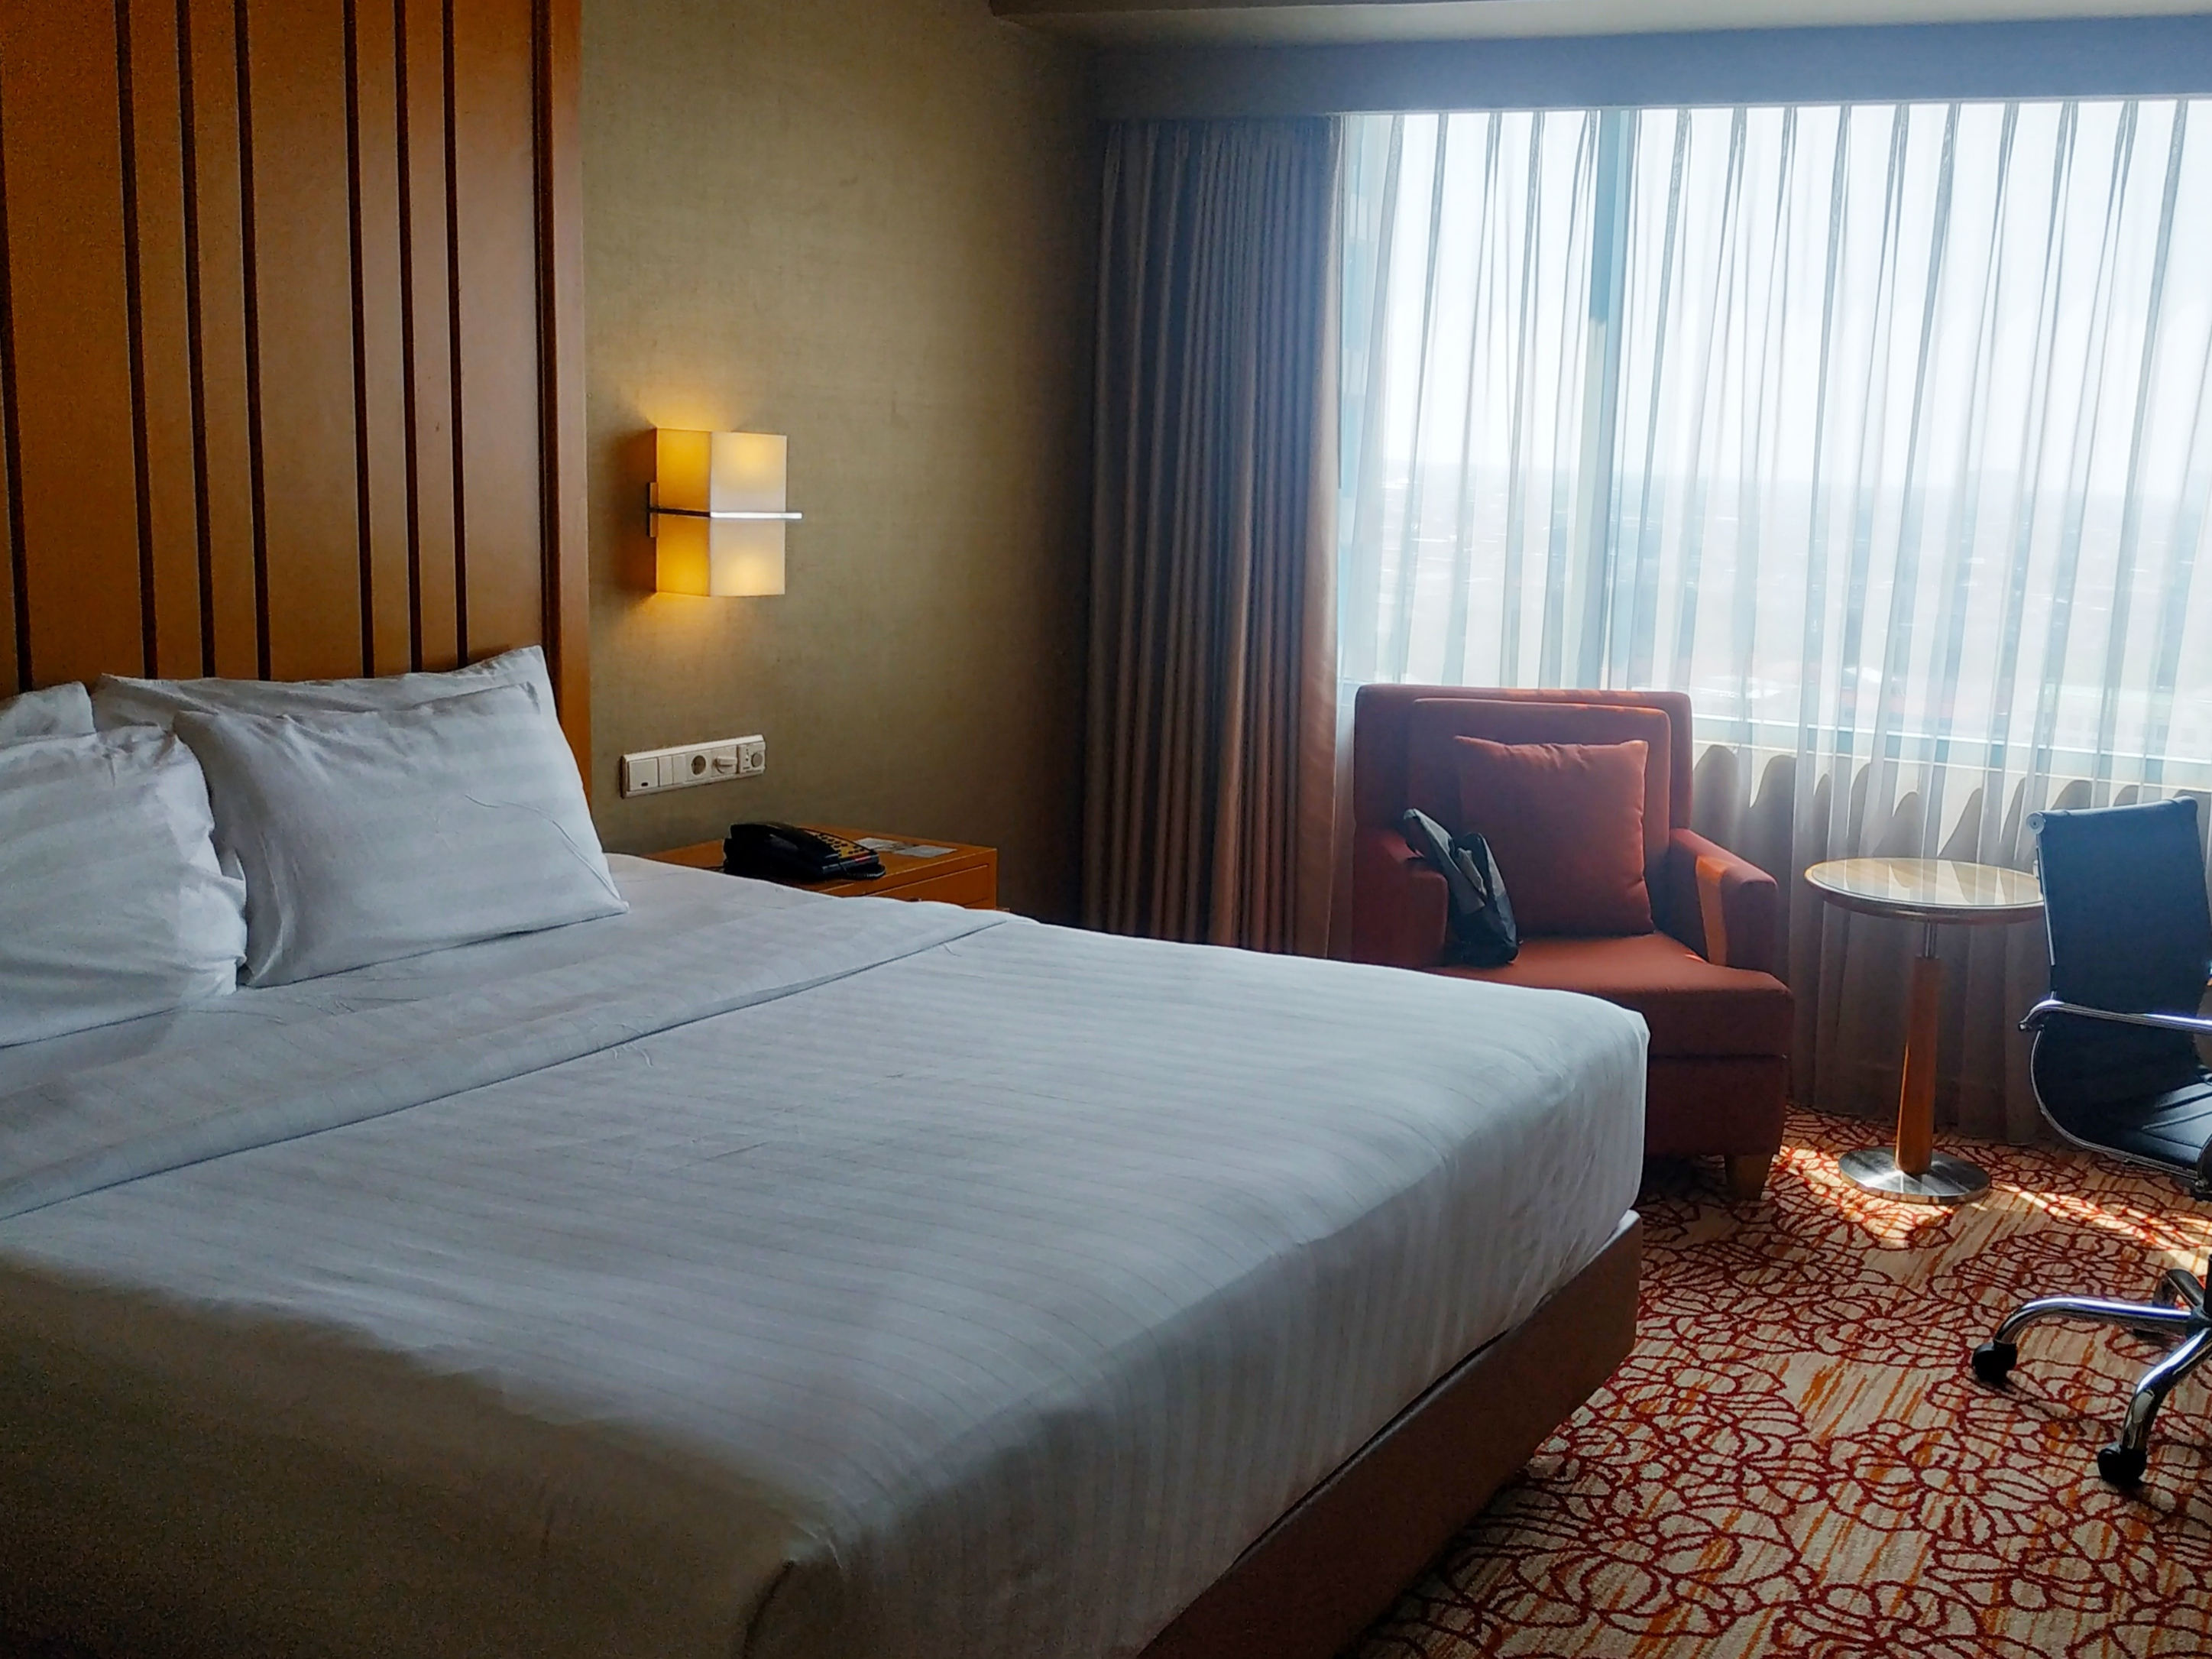 [Review Hotel]Staycation ala new normal - Ciputra Deluxe Room